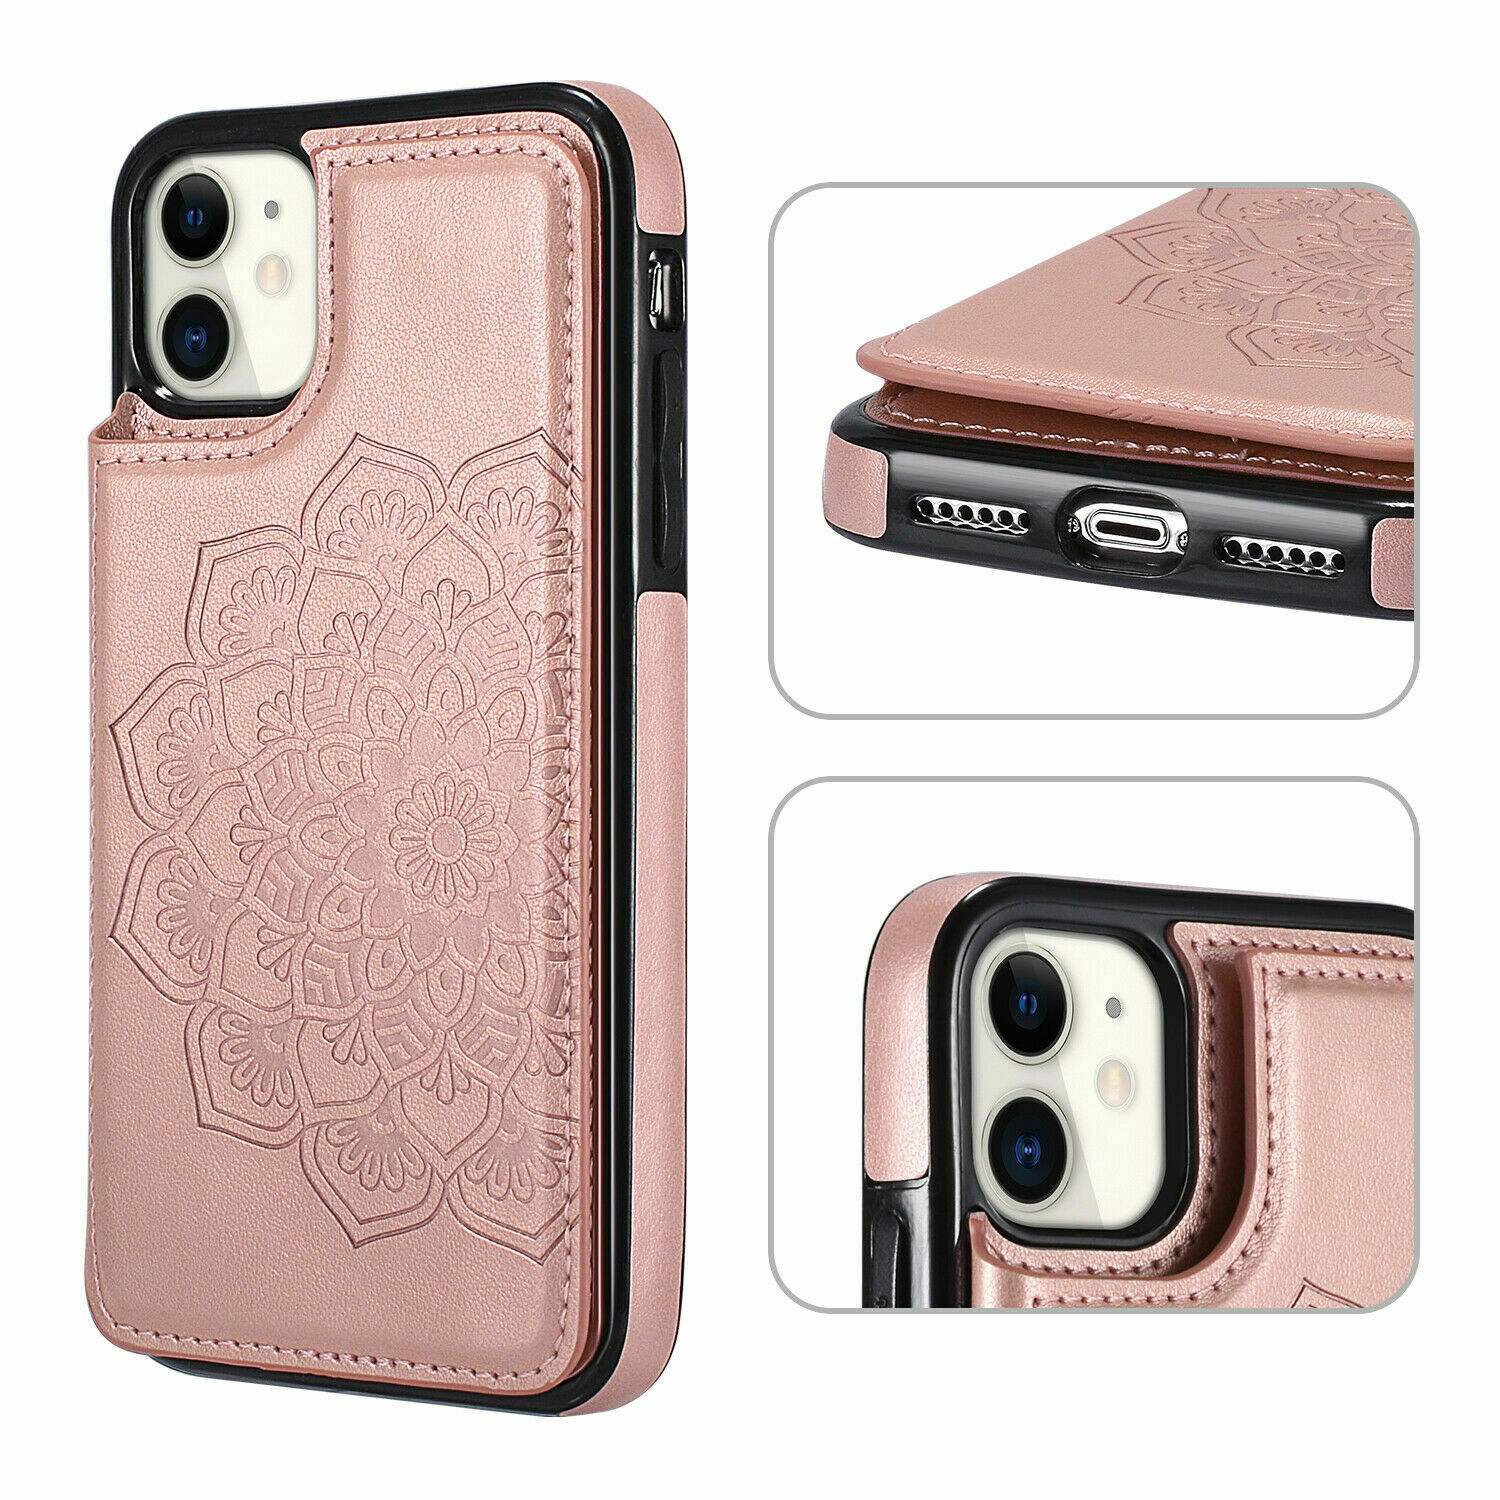 thumbnail 30 - Leather Flip Wallet Card Holder Case Cover For Samsung Galaxy S20 S10 S9 A21s 51